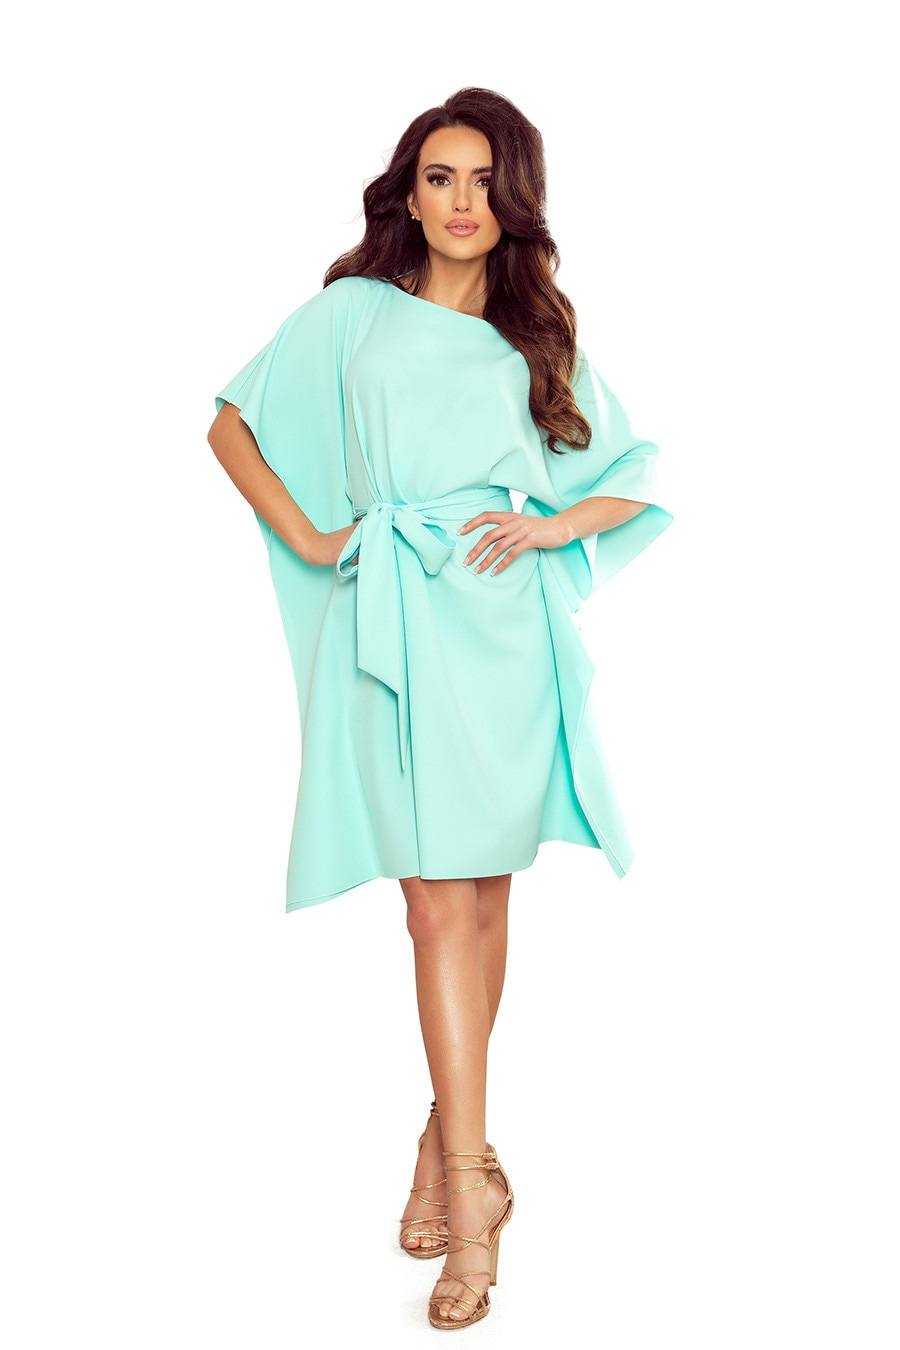 NUMOCO Woman's Dress 287-6 Mint